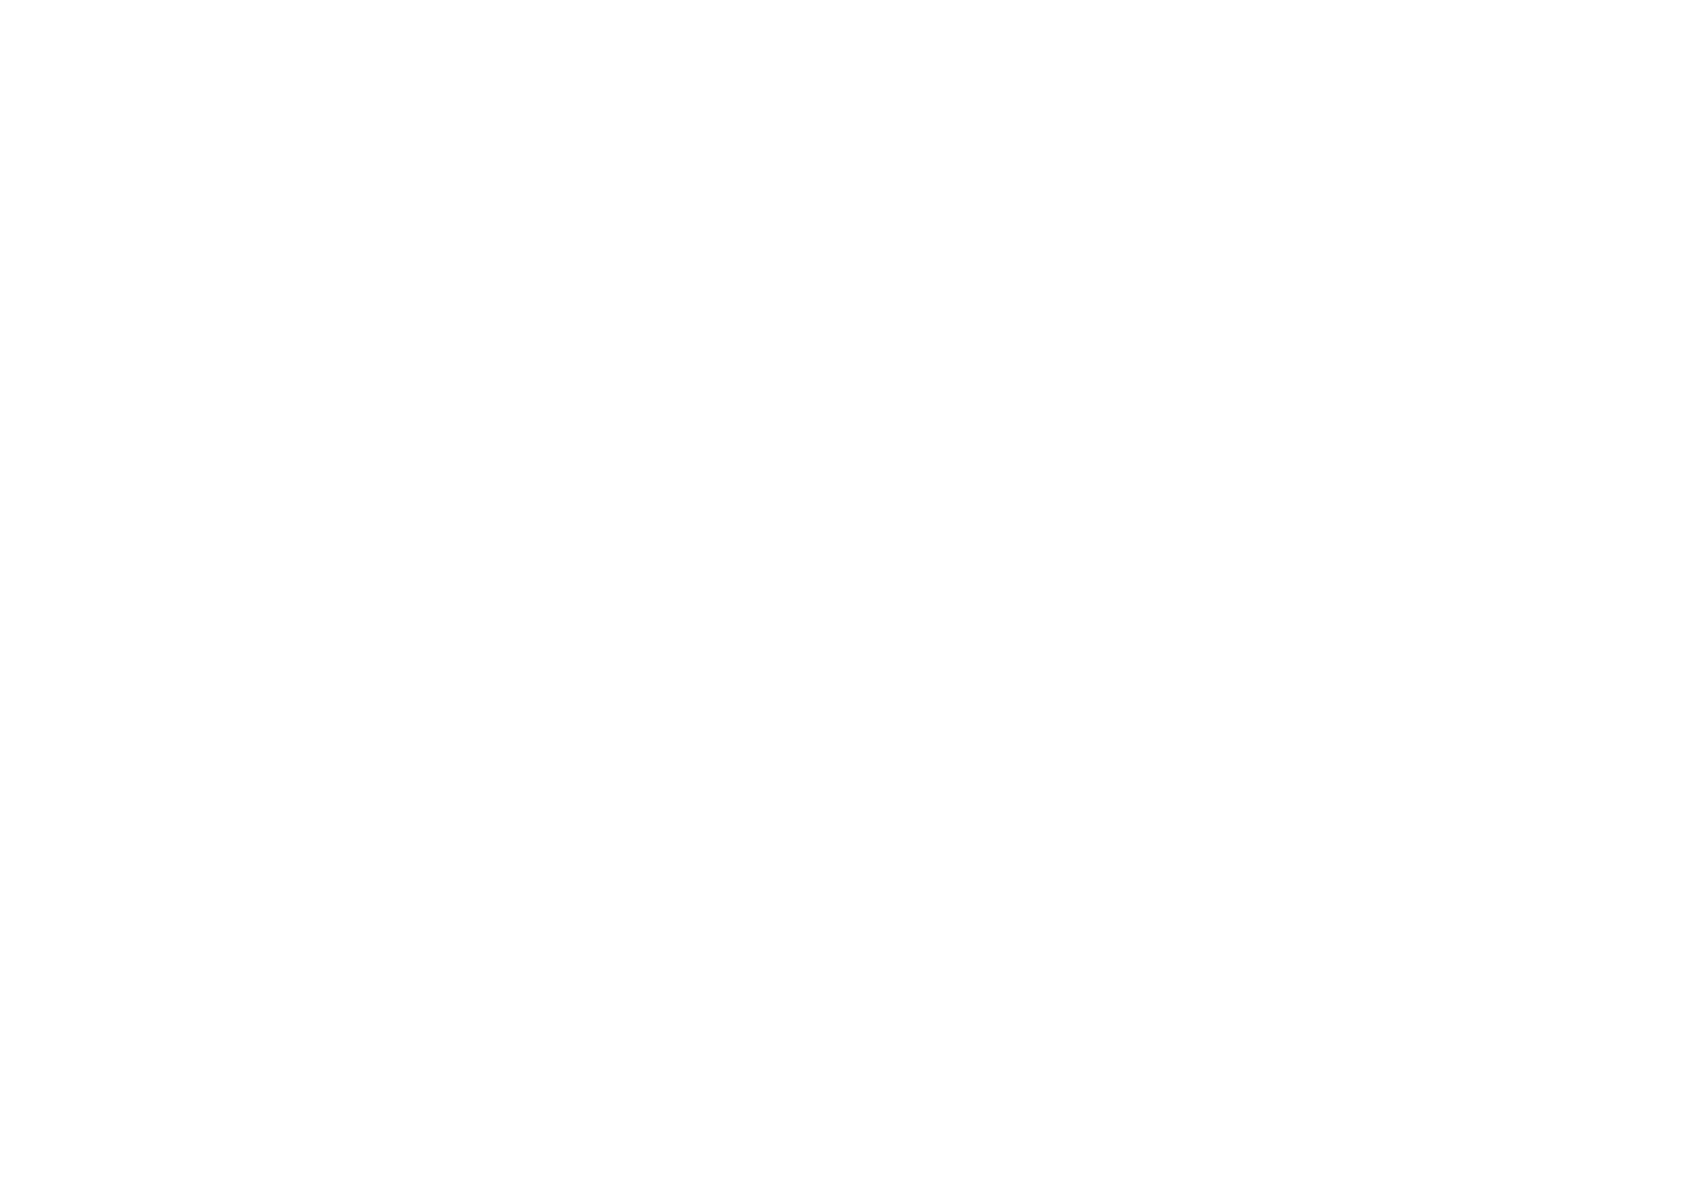 Ventnor International Festival